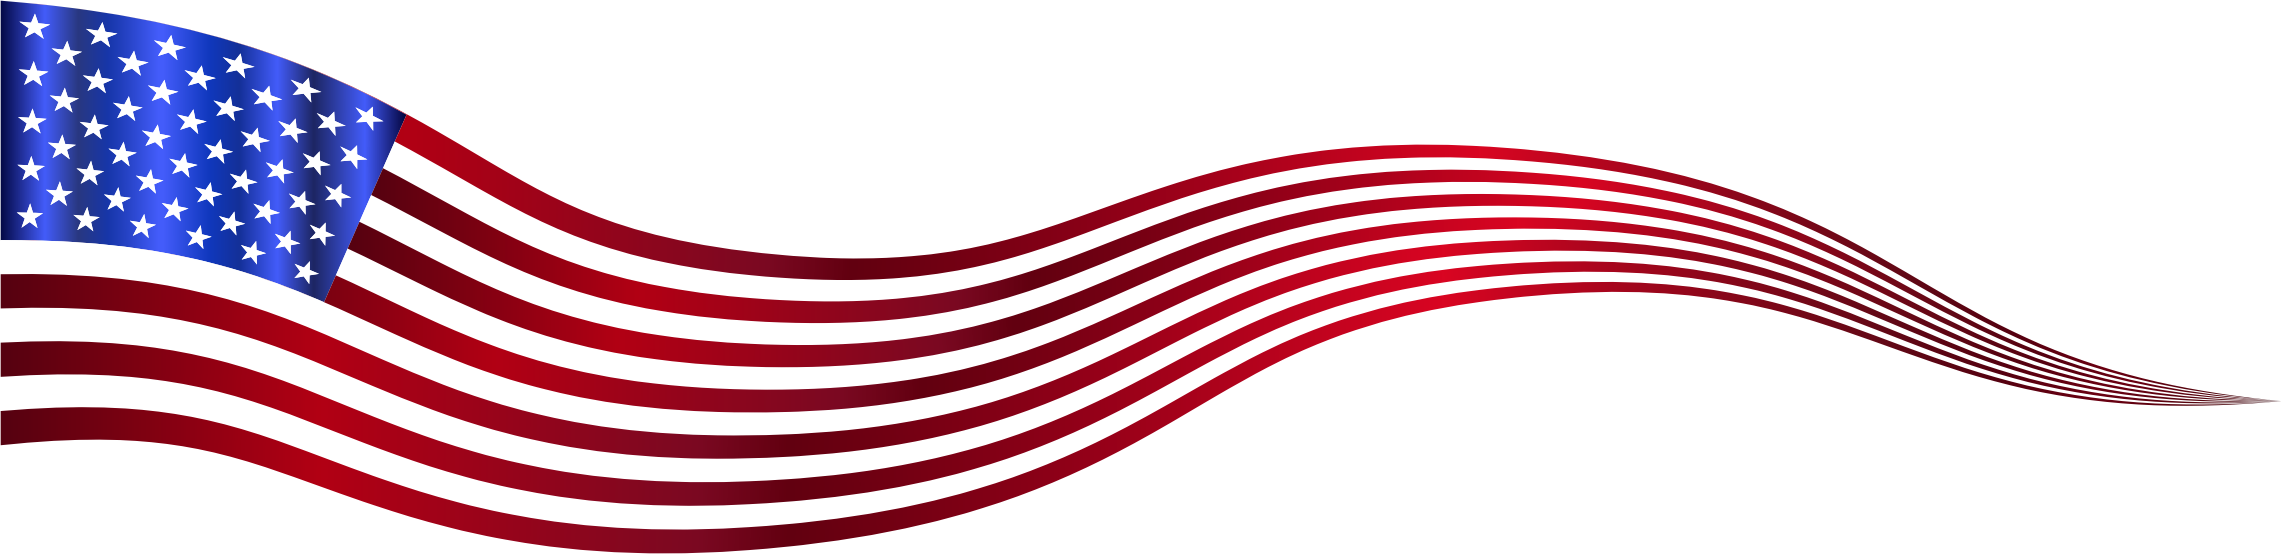 Wavy USA Flag Banner Variation 2 by GDJ